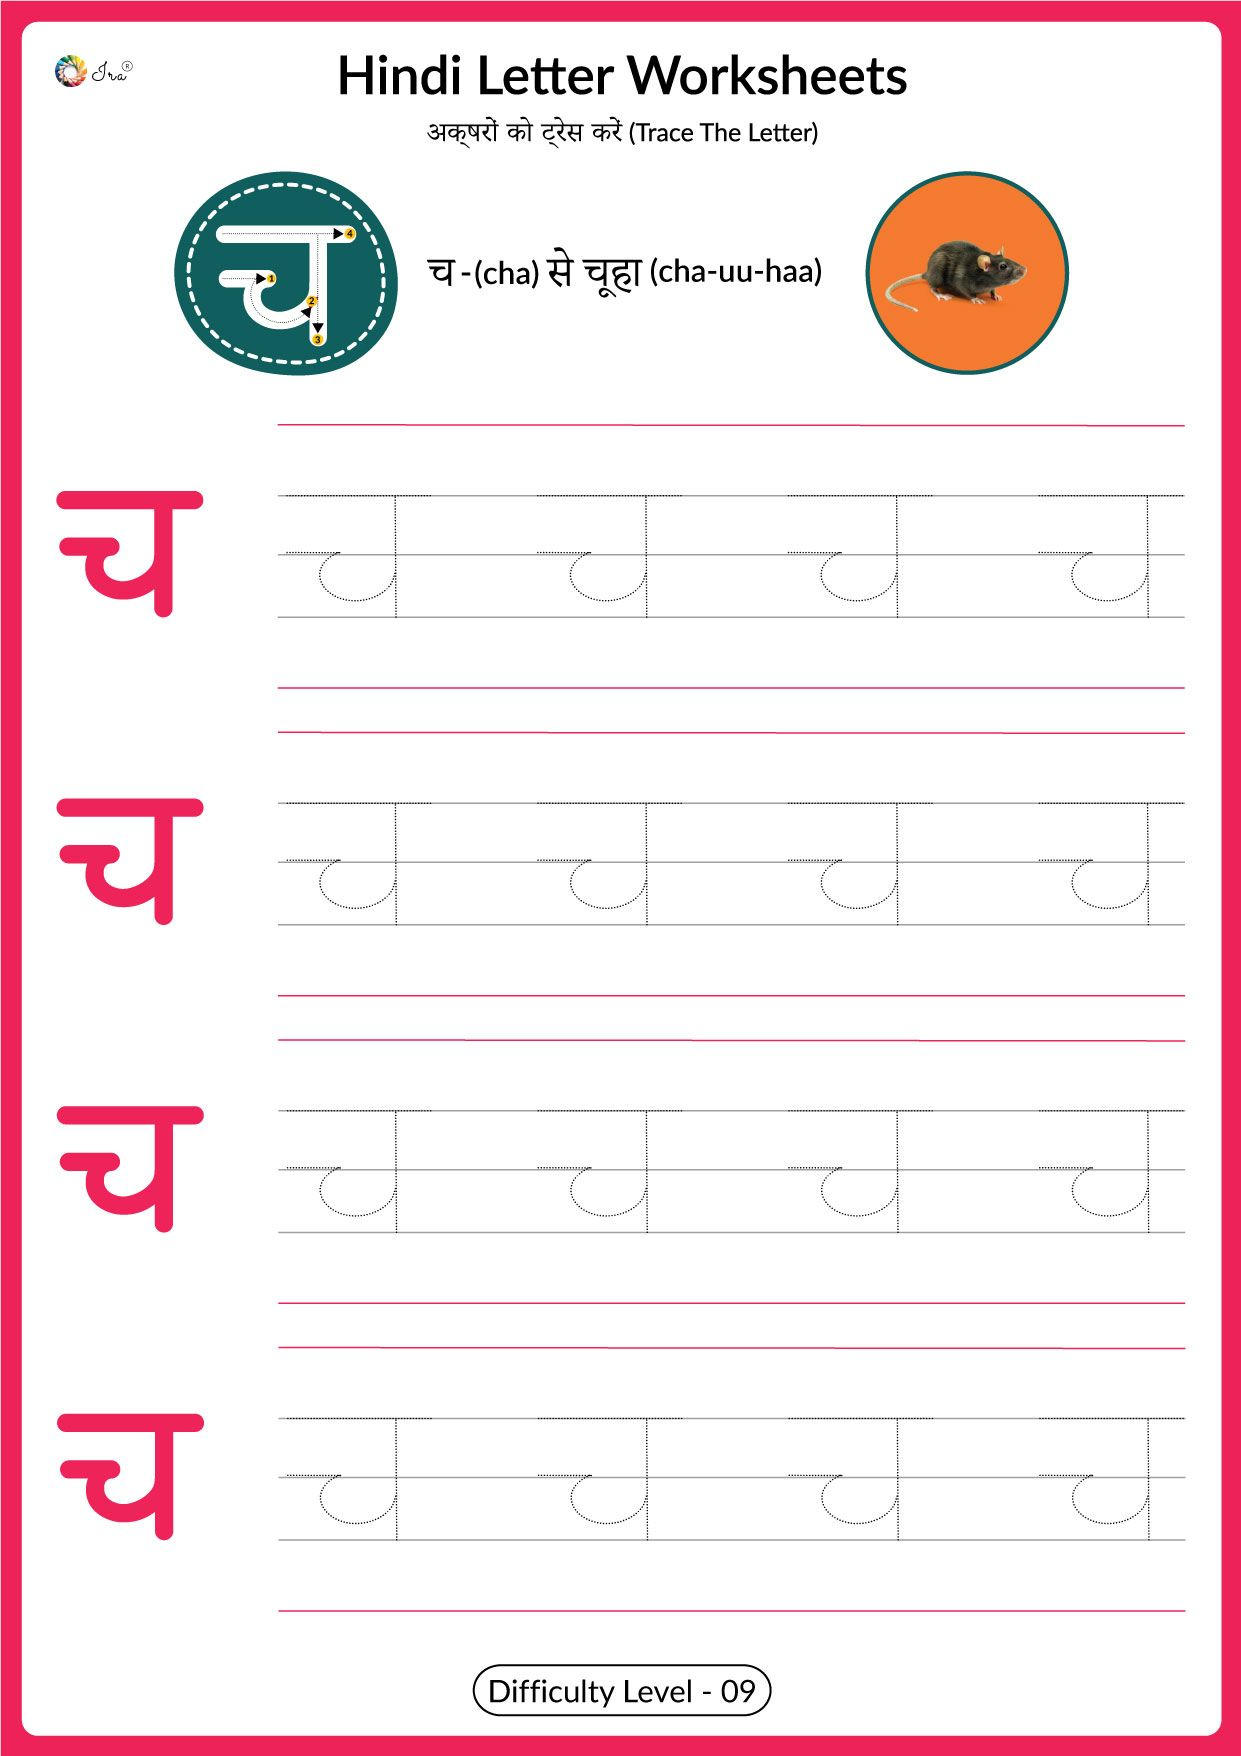 Hindi Varnamala Worksheet Tracing Letter À¤š Ira Parenting Letter Writing Worksheets Handwriting Worksheets For Kids Writing Worksheets - 37+ Hindi Vyanjan Worksheets For Kindergarten Images